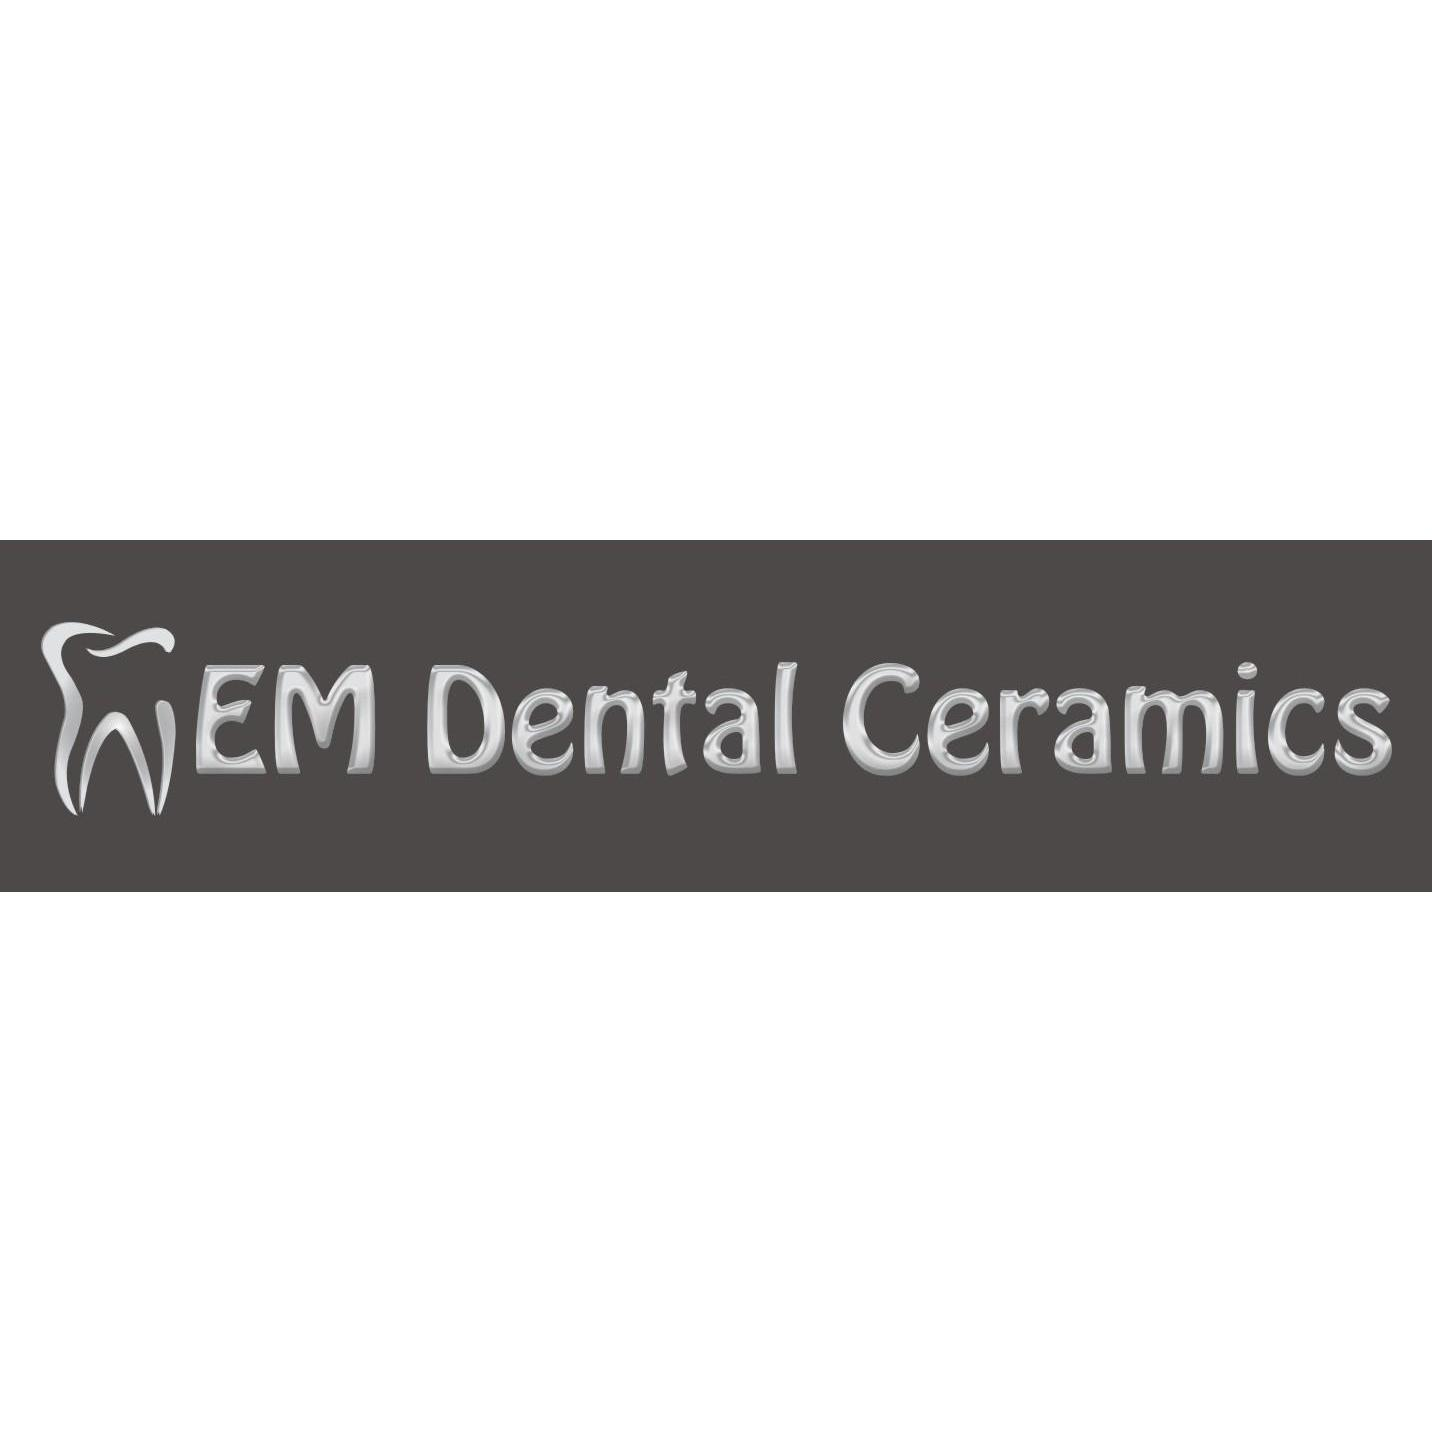 EM Dental Ceramics - Weston-Super-Mare, Somerset BS24 9AY - 01934 626279 | ShowMeLocal.com